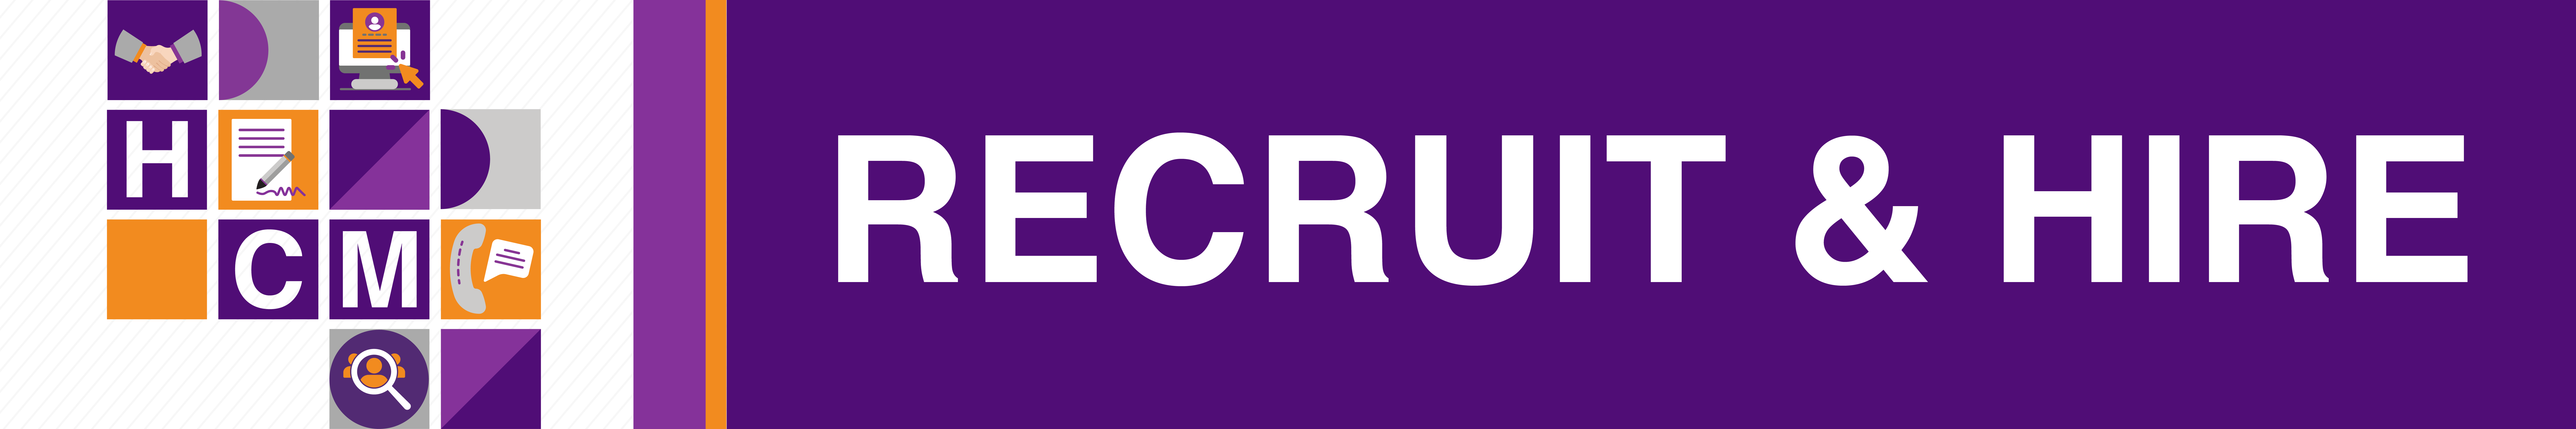 Recruit and hire